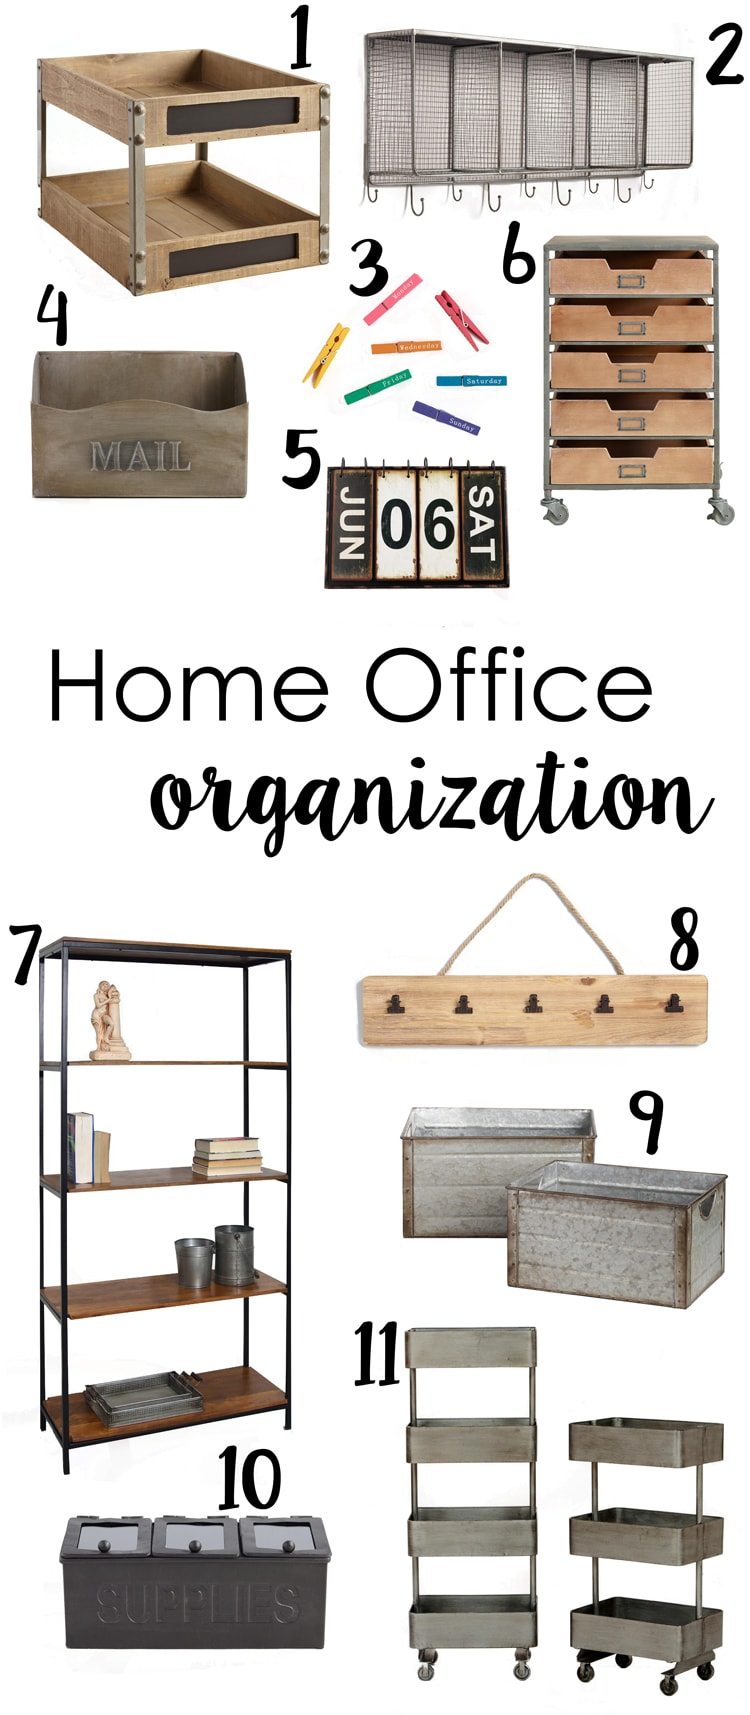 http://cutesycrafts.com/wp-content/uploads/2017/02/office-organization-ideas-3.jpg